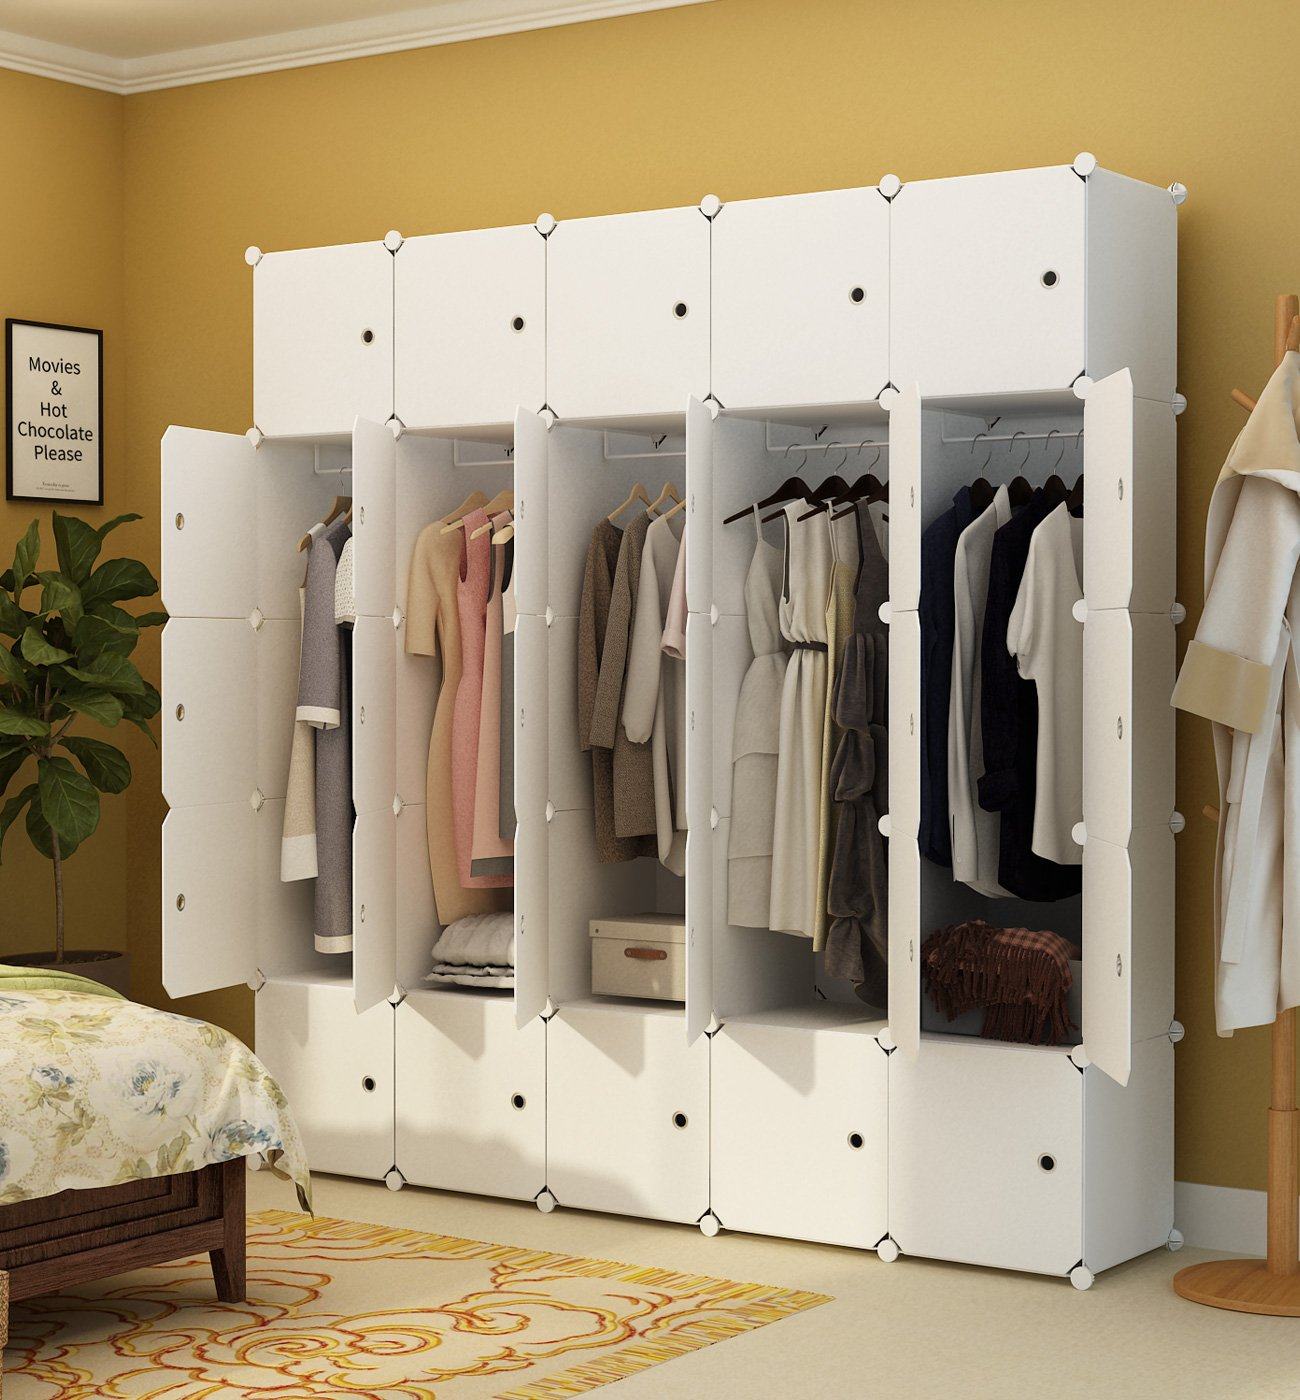 【SPACIOUS STORAGE CLOSET】: 5 Hanging Sections And 10 Storage Cubes Offer  You Extra Space For Heavy Outfits, Folded Clothes And Belongings.